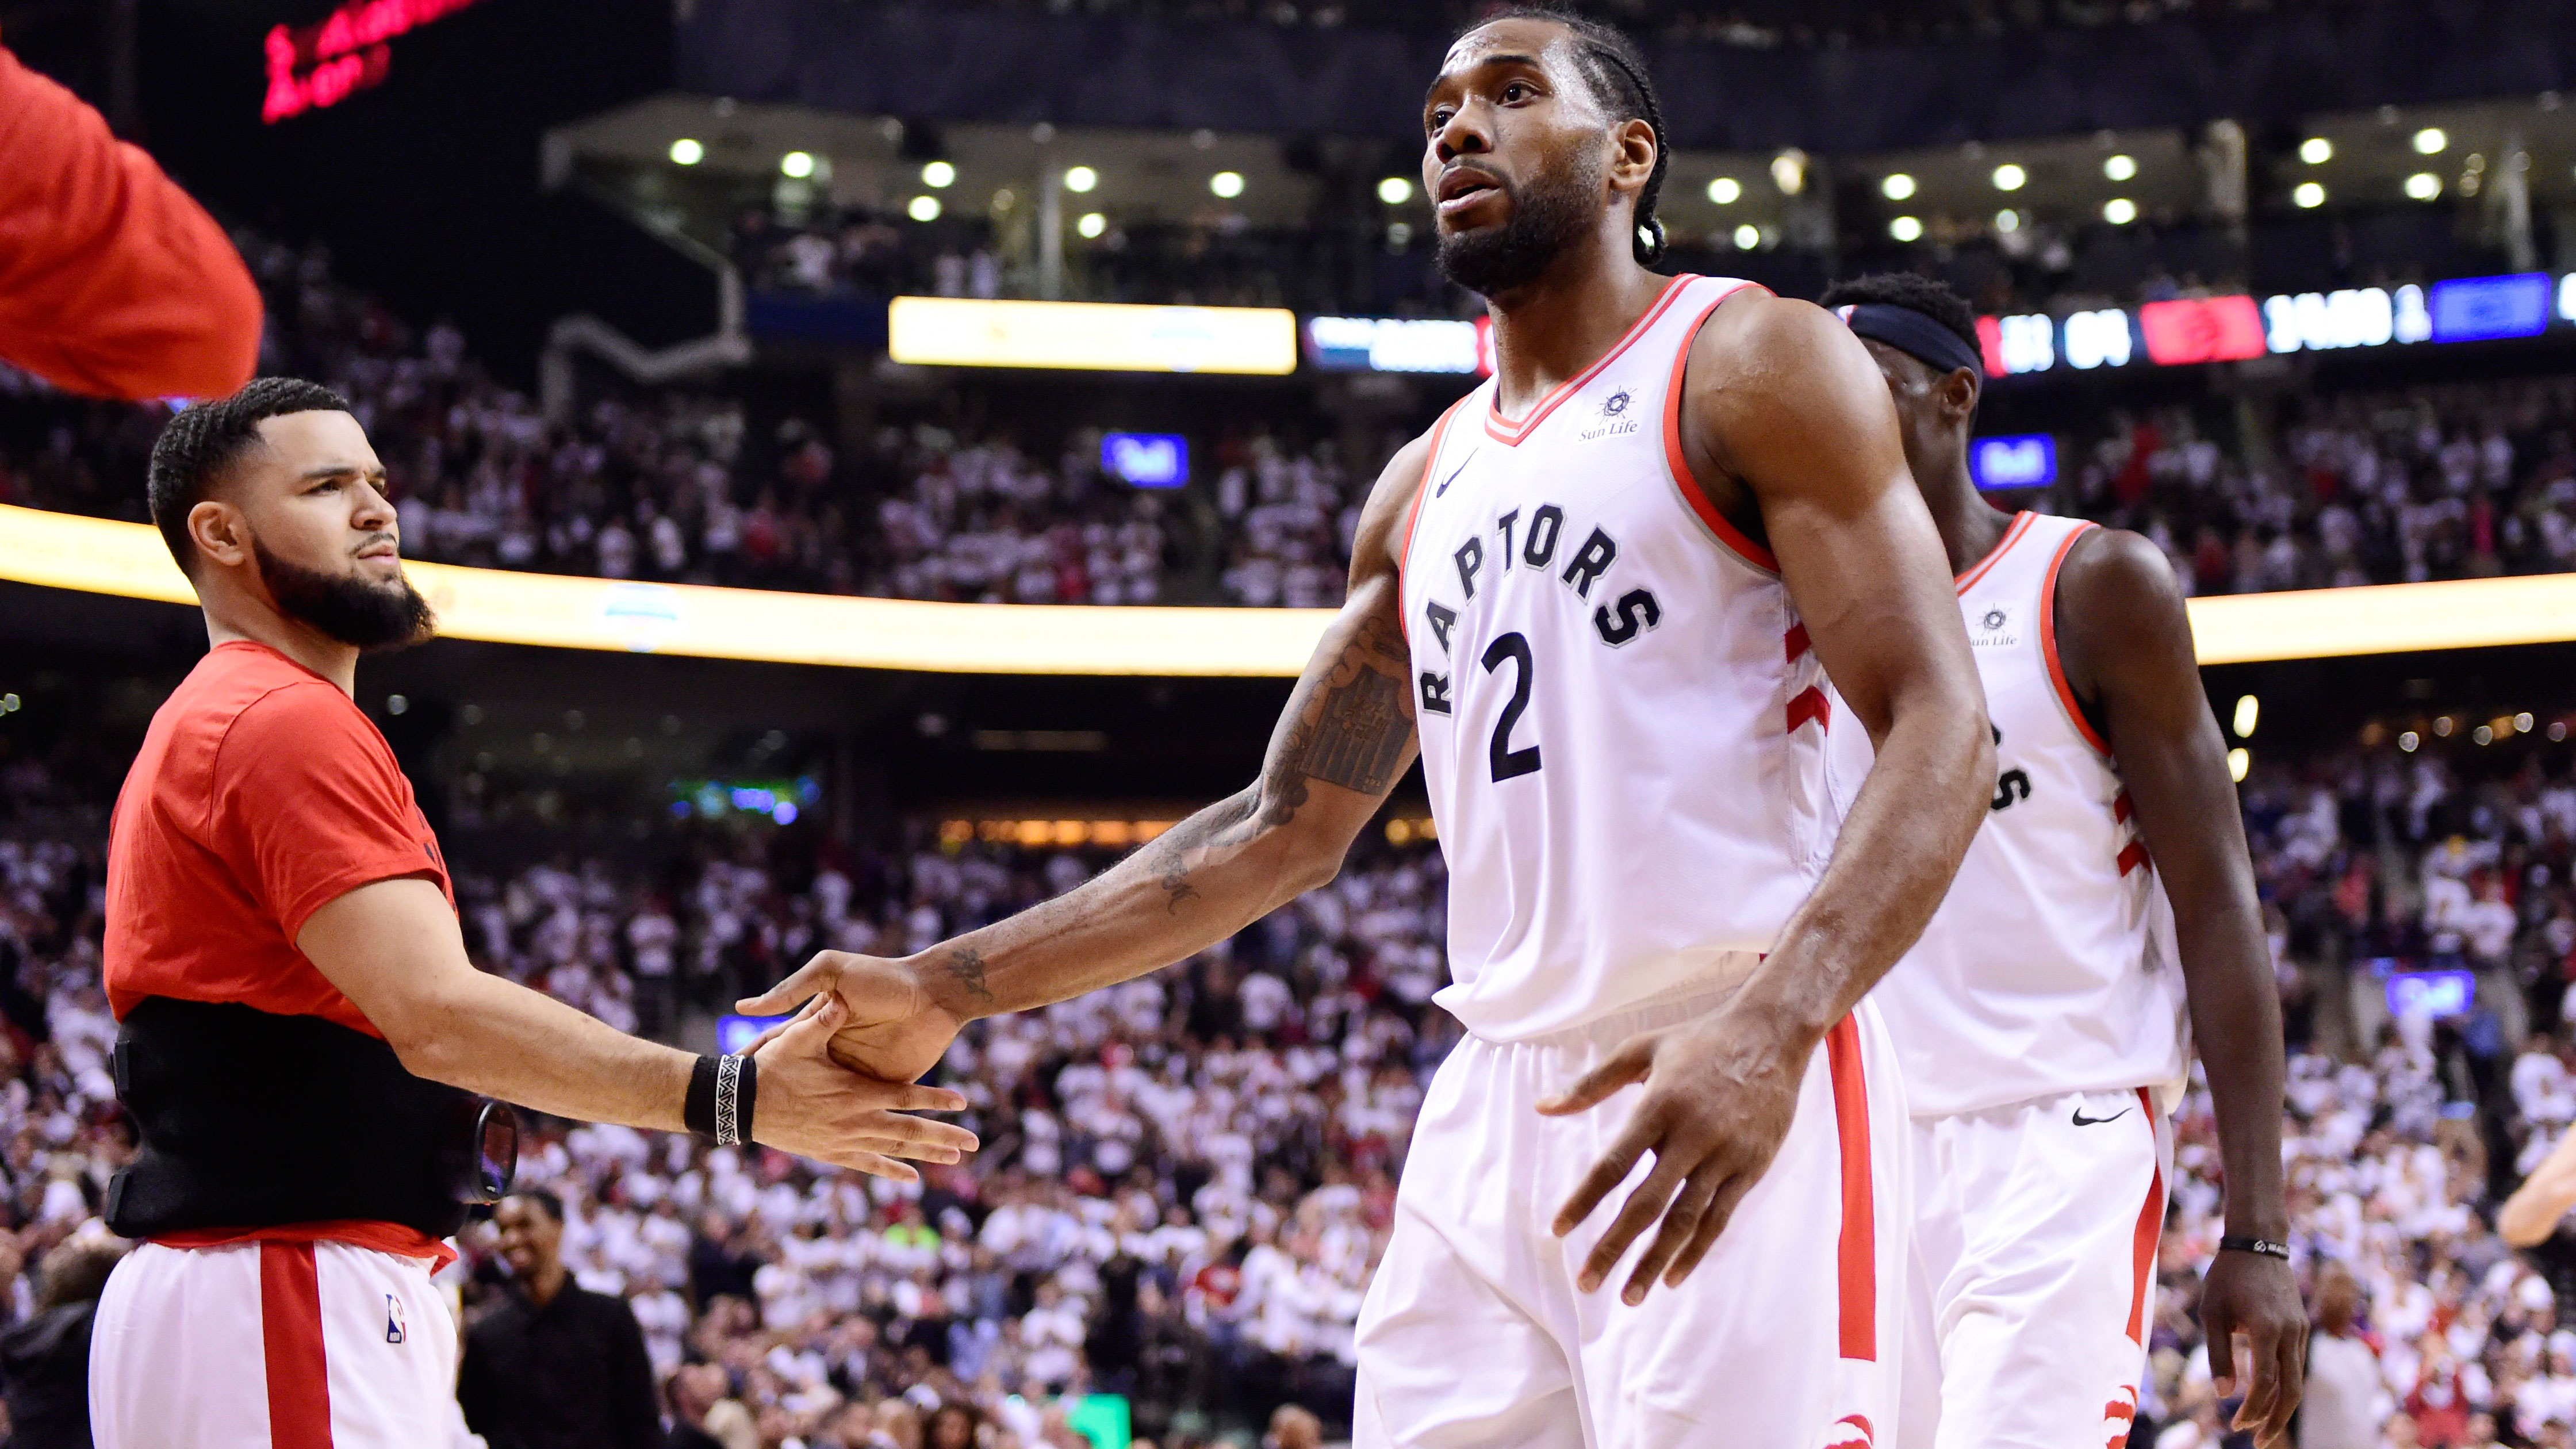 e2a404688e9 Leonard s co-stars step up as Raptors outshine 76ers in Game 5 ...